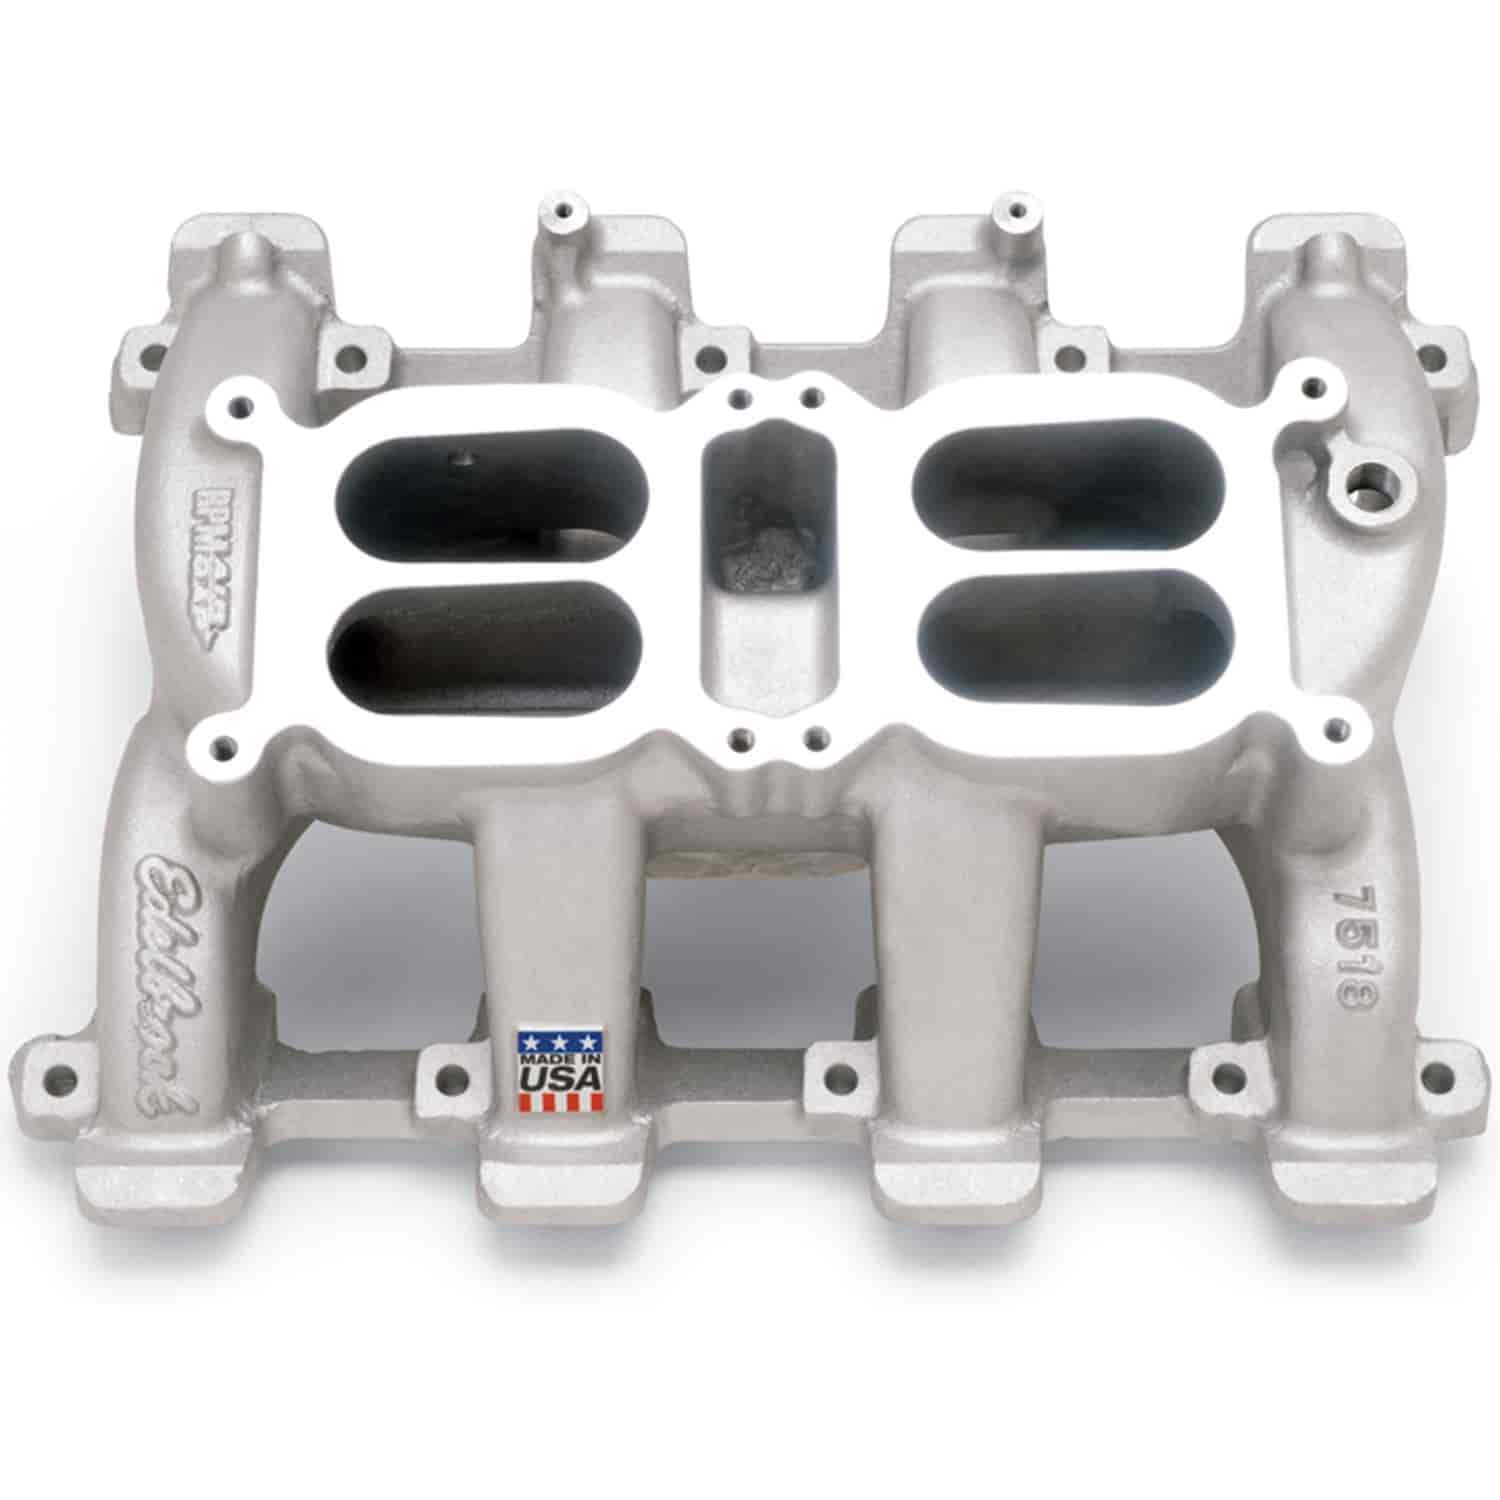 Edelbrock Performer Rpm Ls1 Intake Manifold: Edelbrock 75187 RPM Air-Gap Dual-Quad LS1 Manifold For GM